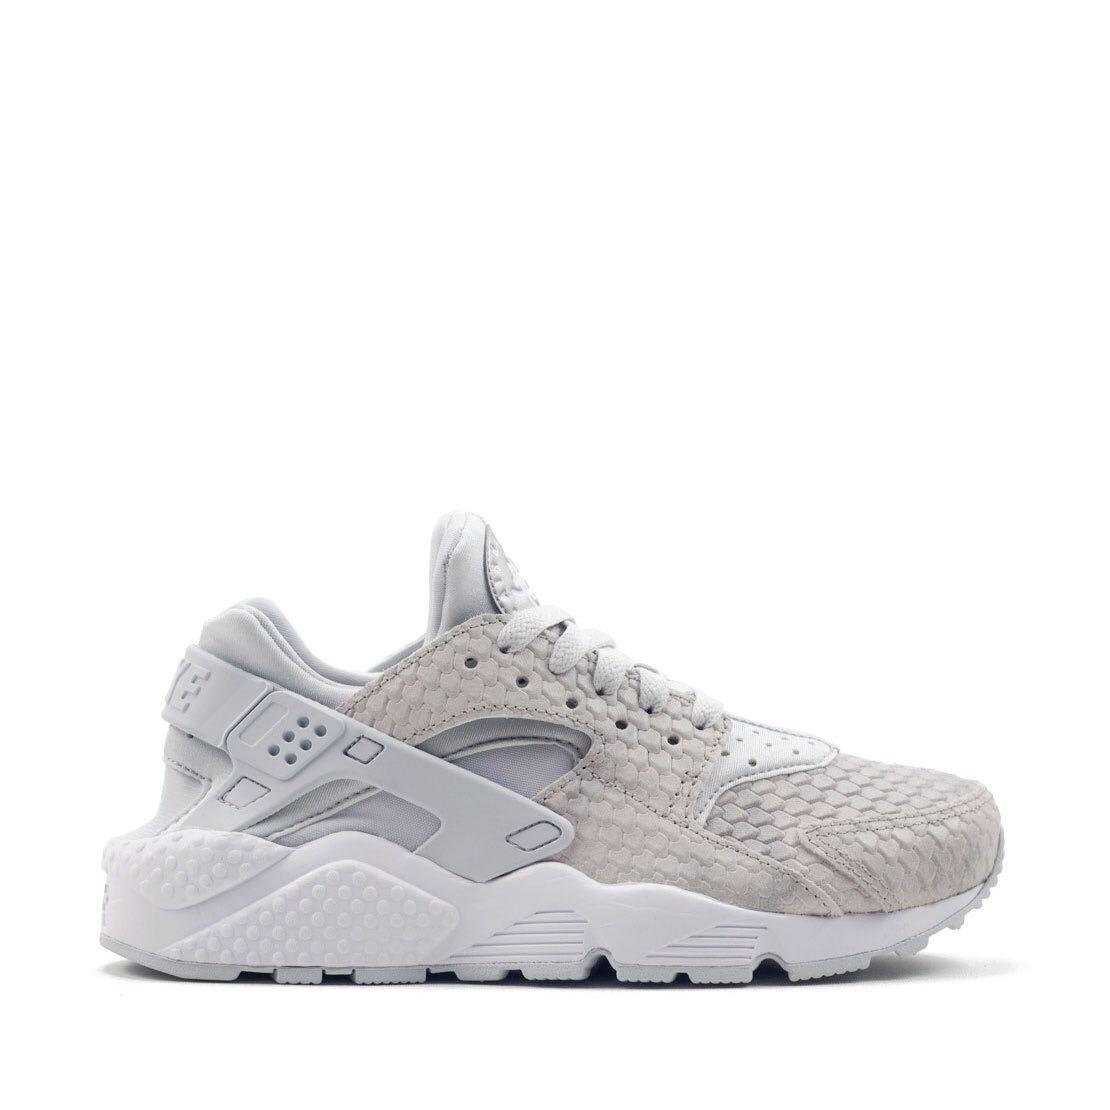 ON HOLD nike air huarache premium sneakers with grey/platinum snake skin pattern